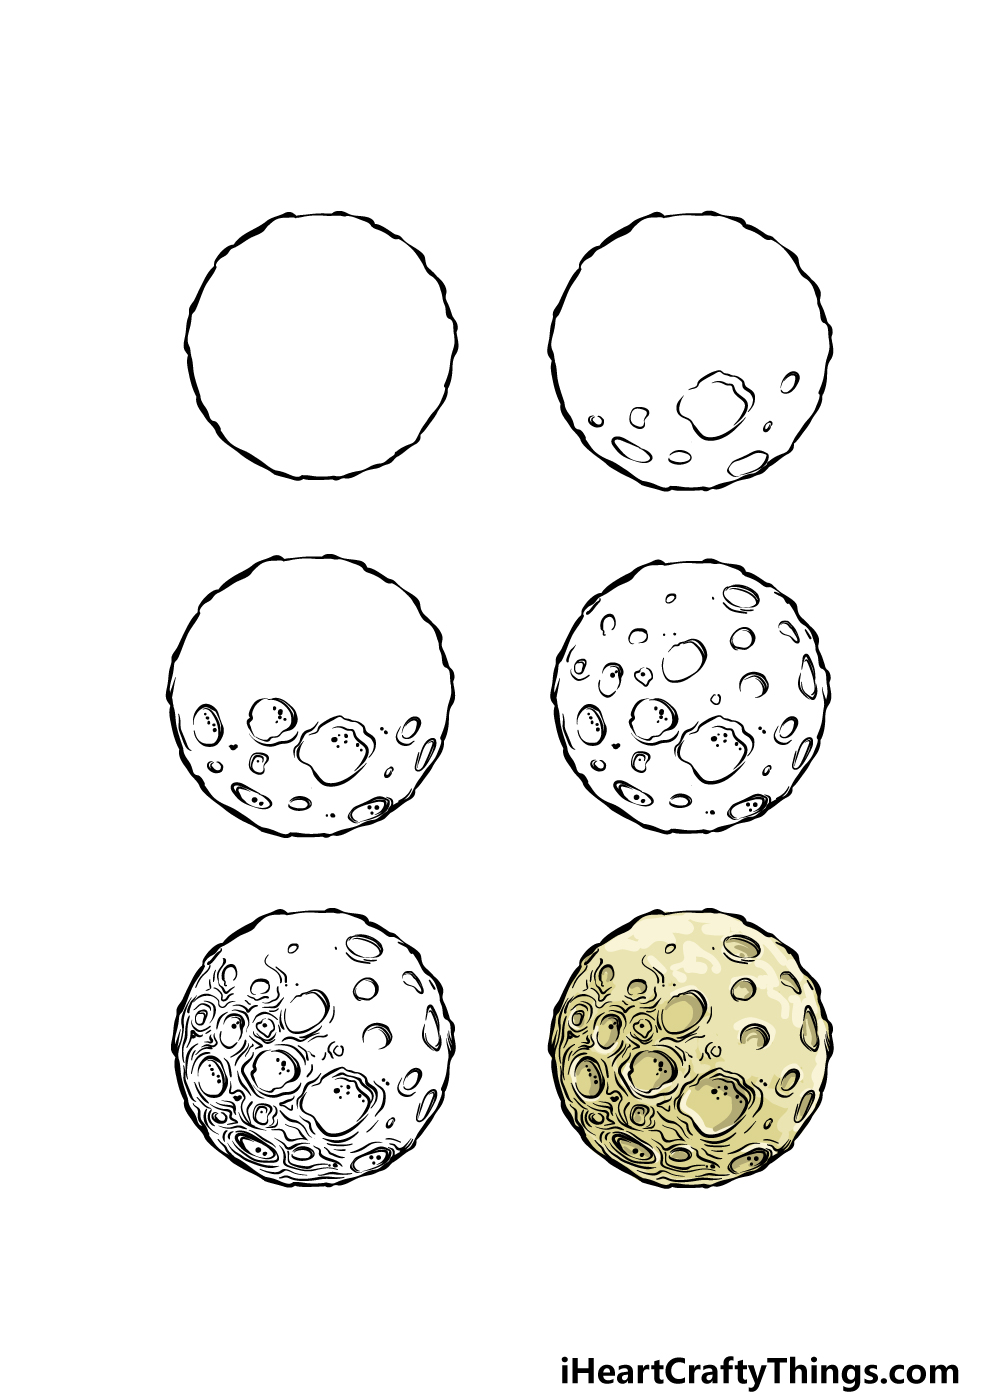 how to draw a full moon in 6 steps